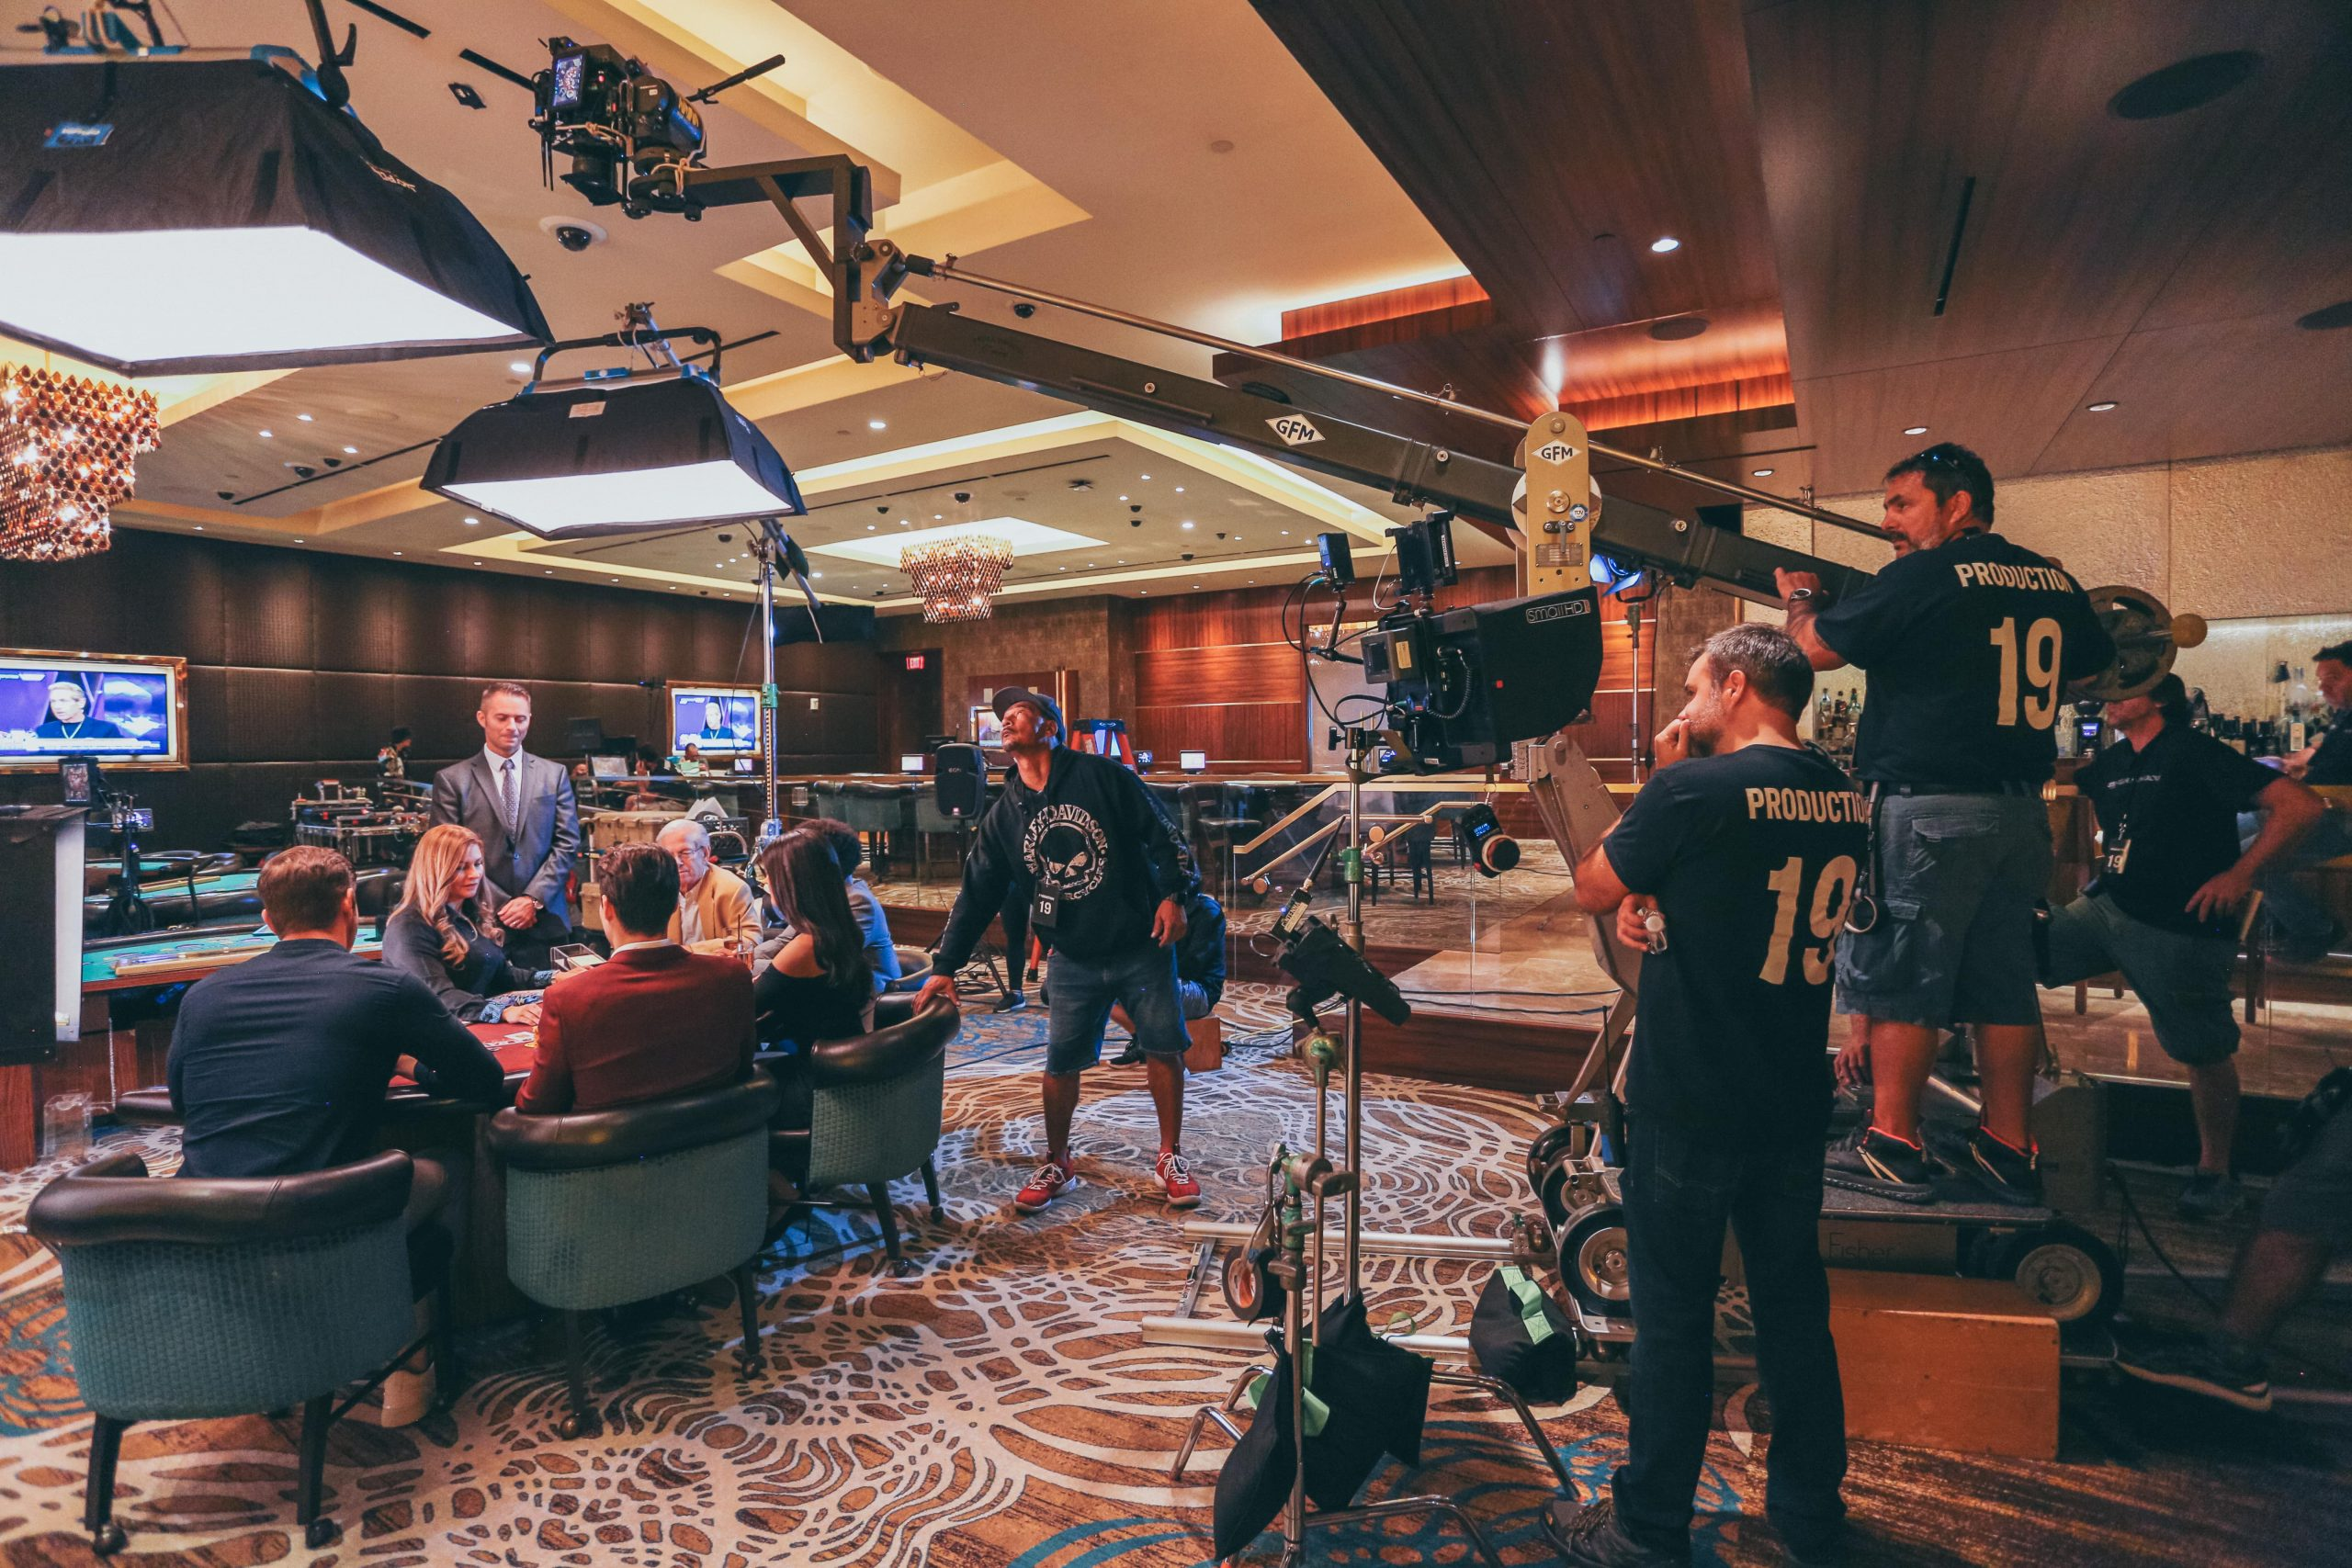 South Florida Seminole Hard Rock Hotel and Casino - Artex Productions - Best Commercial Video Production Agency in Miami